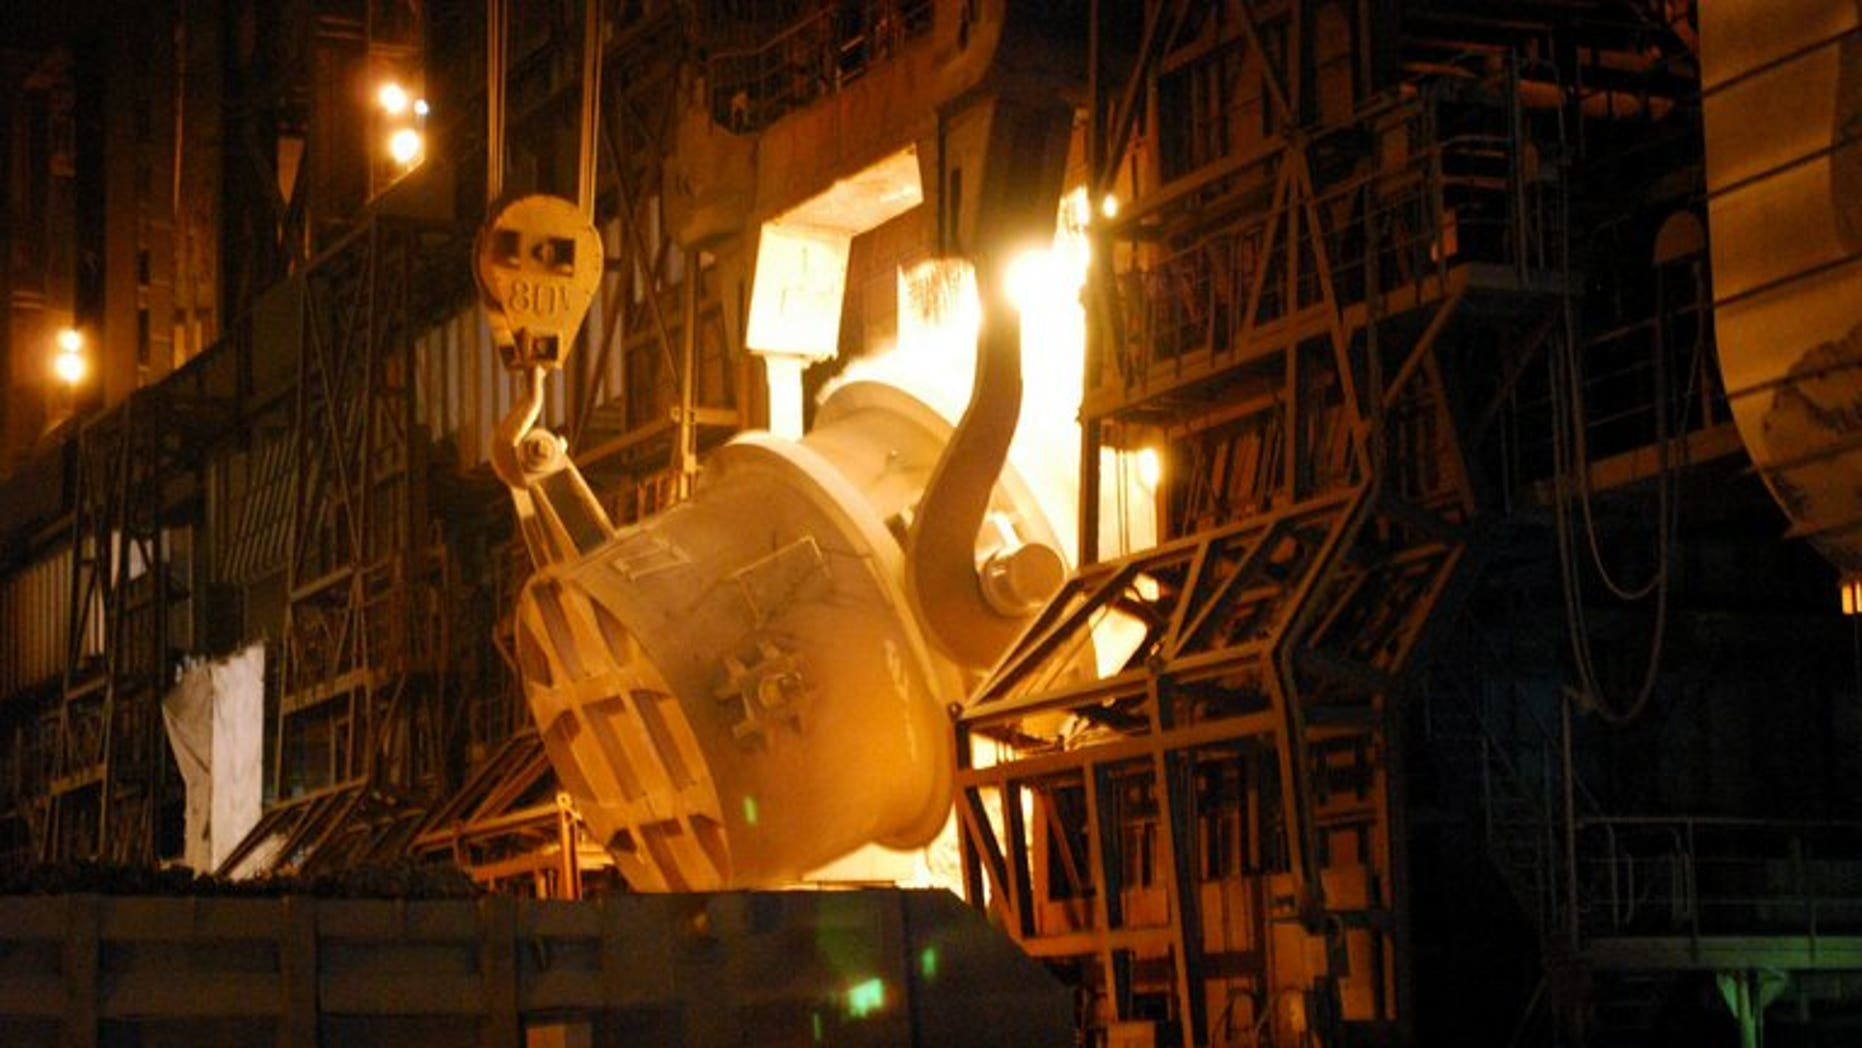 A converter process at Nippon Steel's Kimitsu iron mill in Kimitsu, on November 26, 2010. A South Korean court has ordered the Japanese steel giant to pay compensation over forced wartime labour in what was described as the first ruling of its kind.